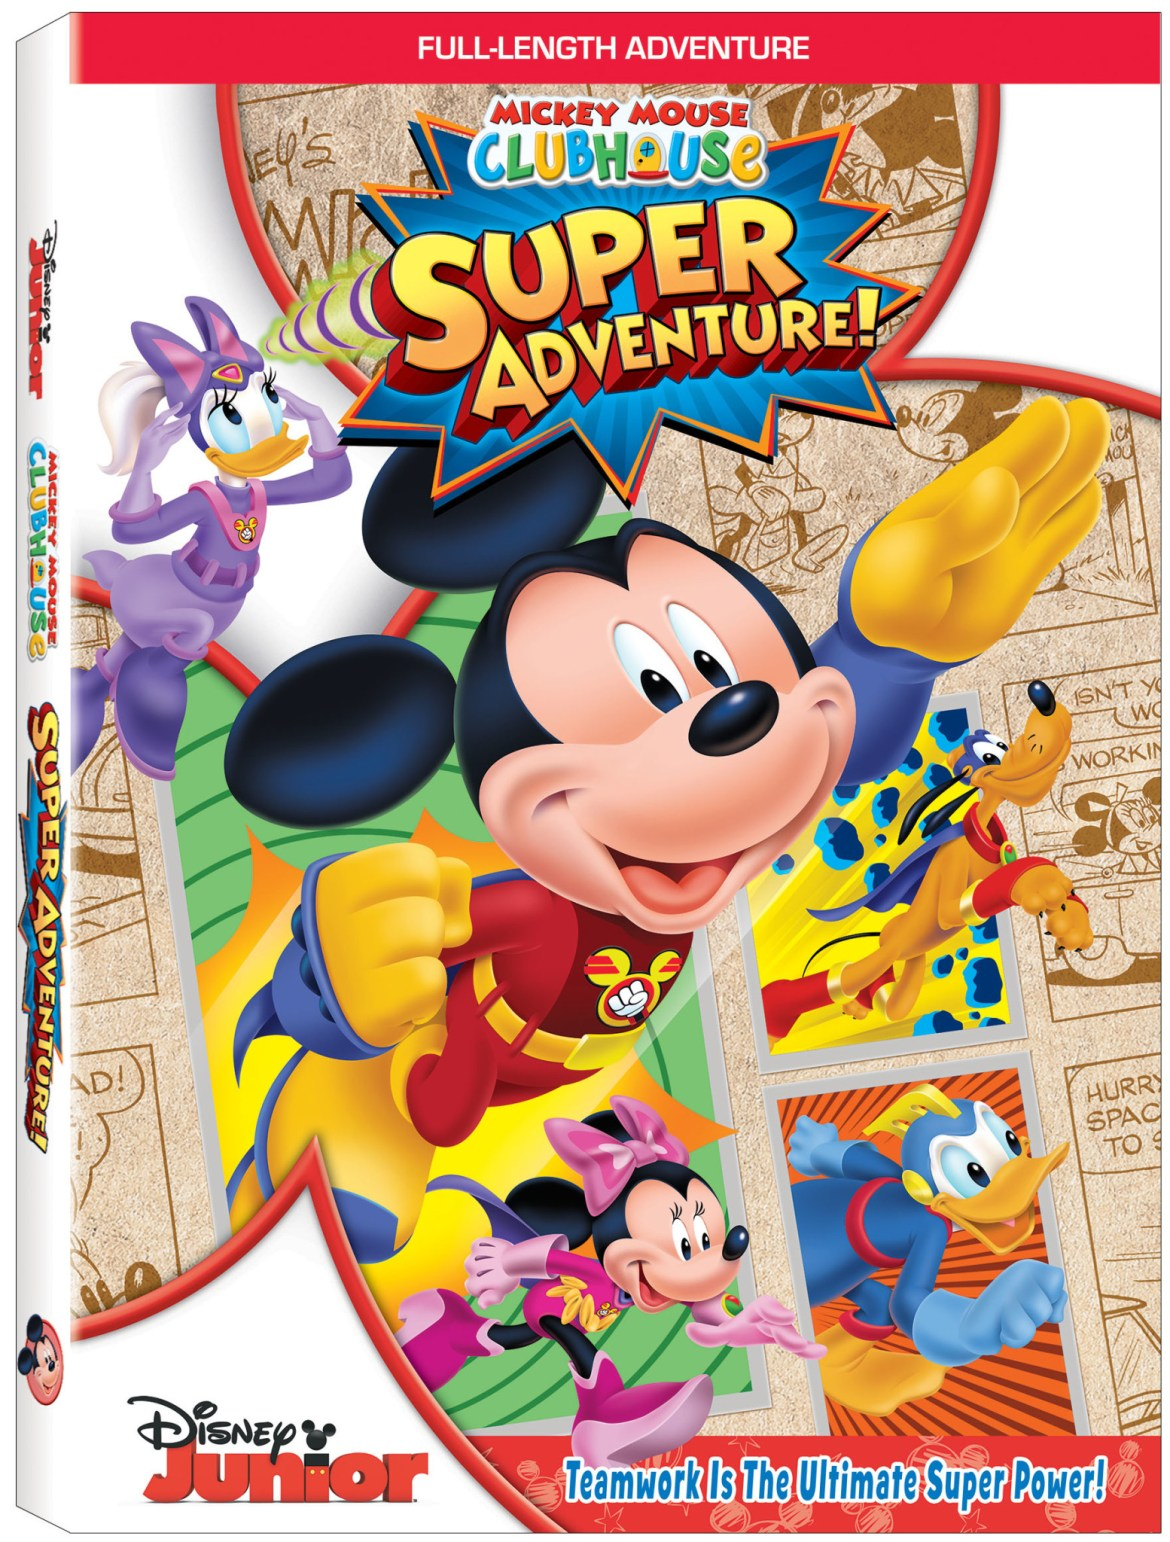 Up, Up and Away – Mickey Mouse Clubhouse: Super Adventure